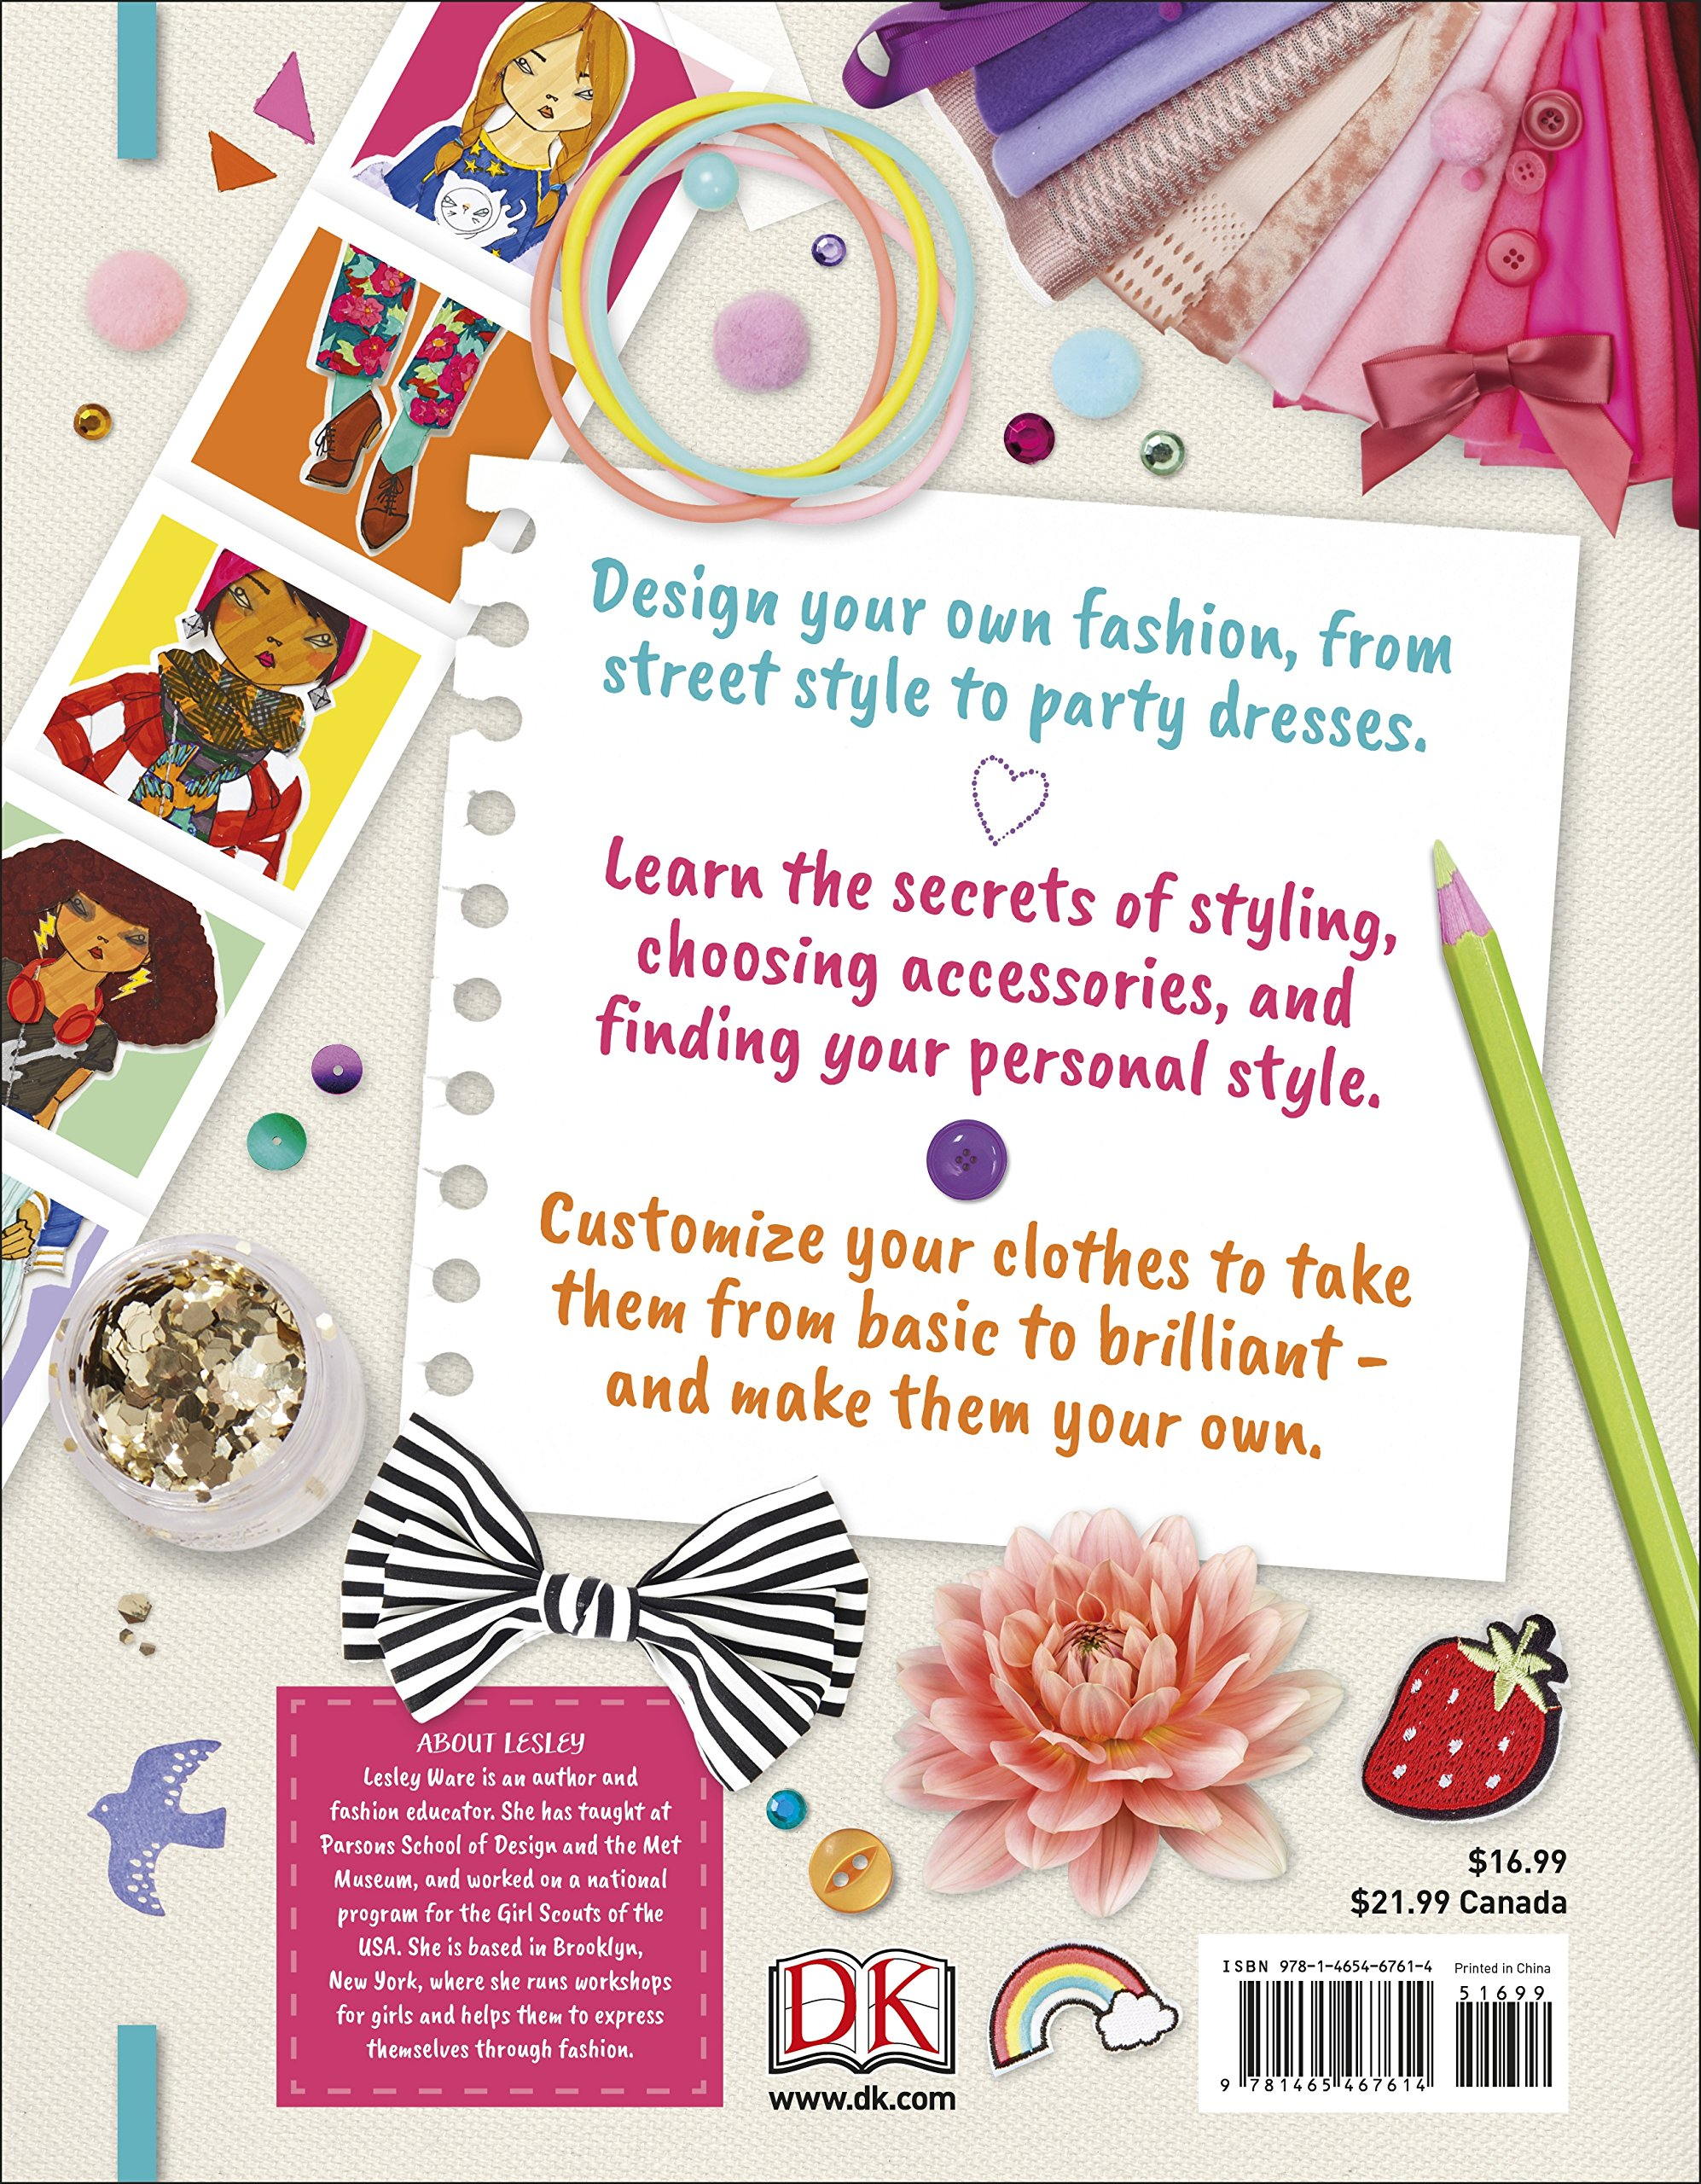 How To Be A Fashion Designer Careers For Kids Ware Lesley Tiki Papier 9781465467614 Amazon Com Books